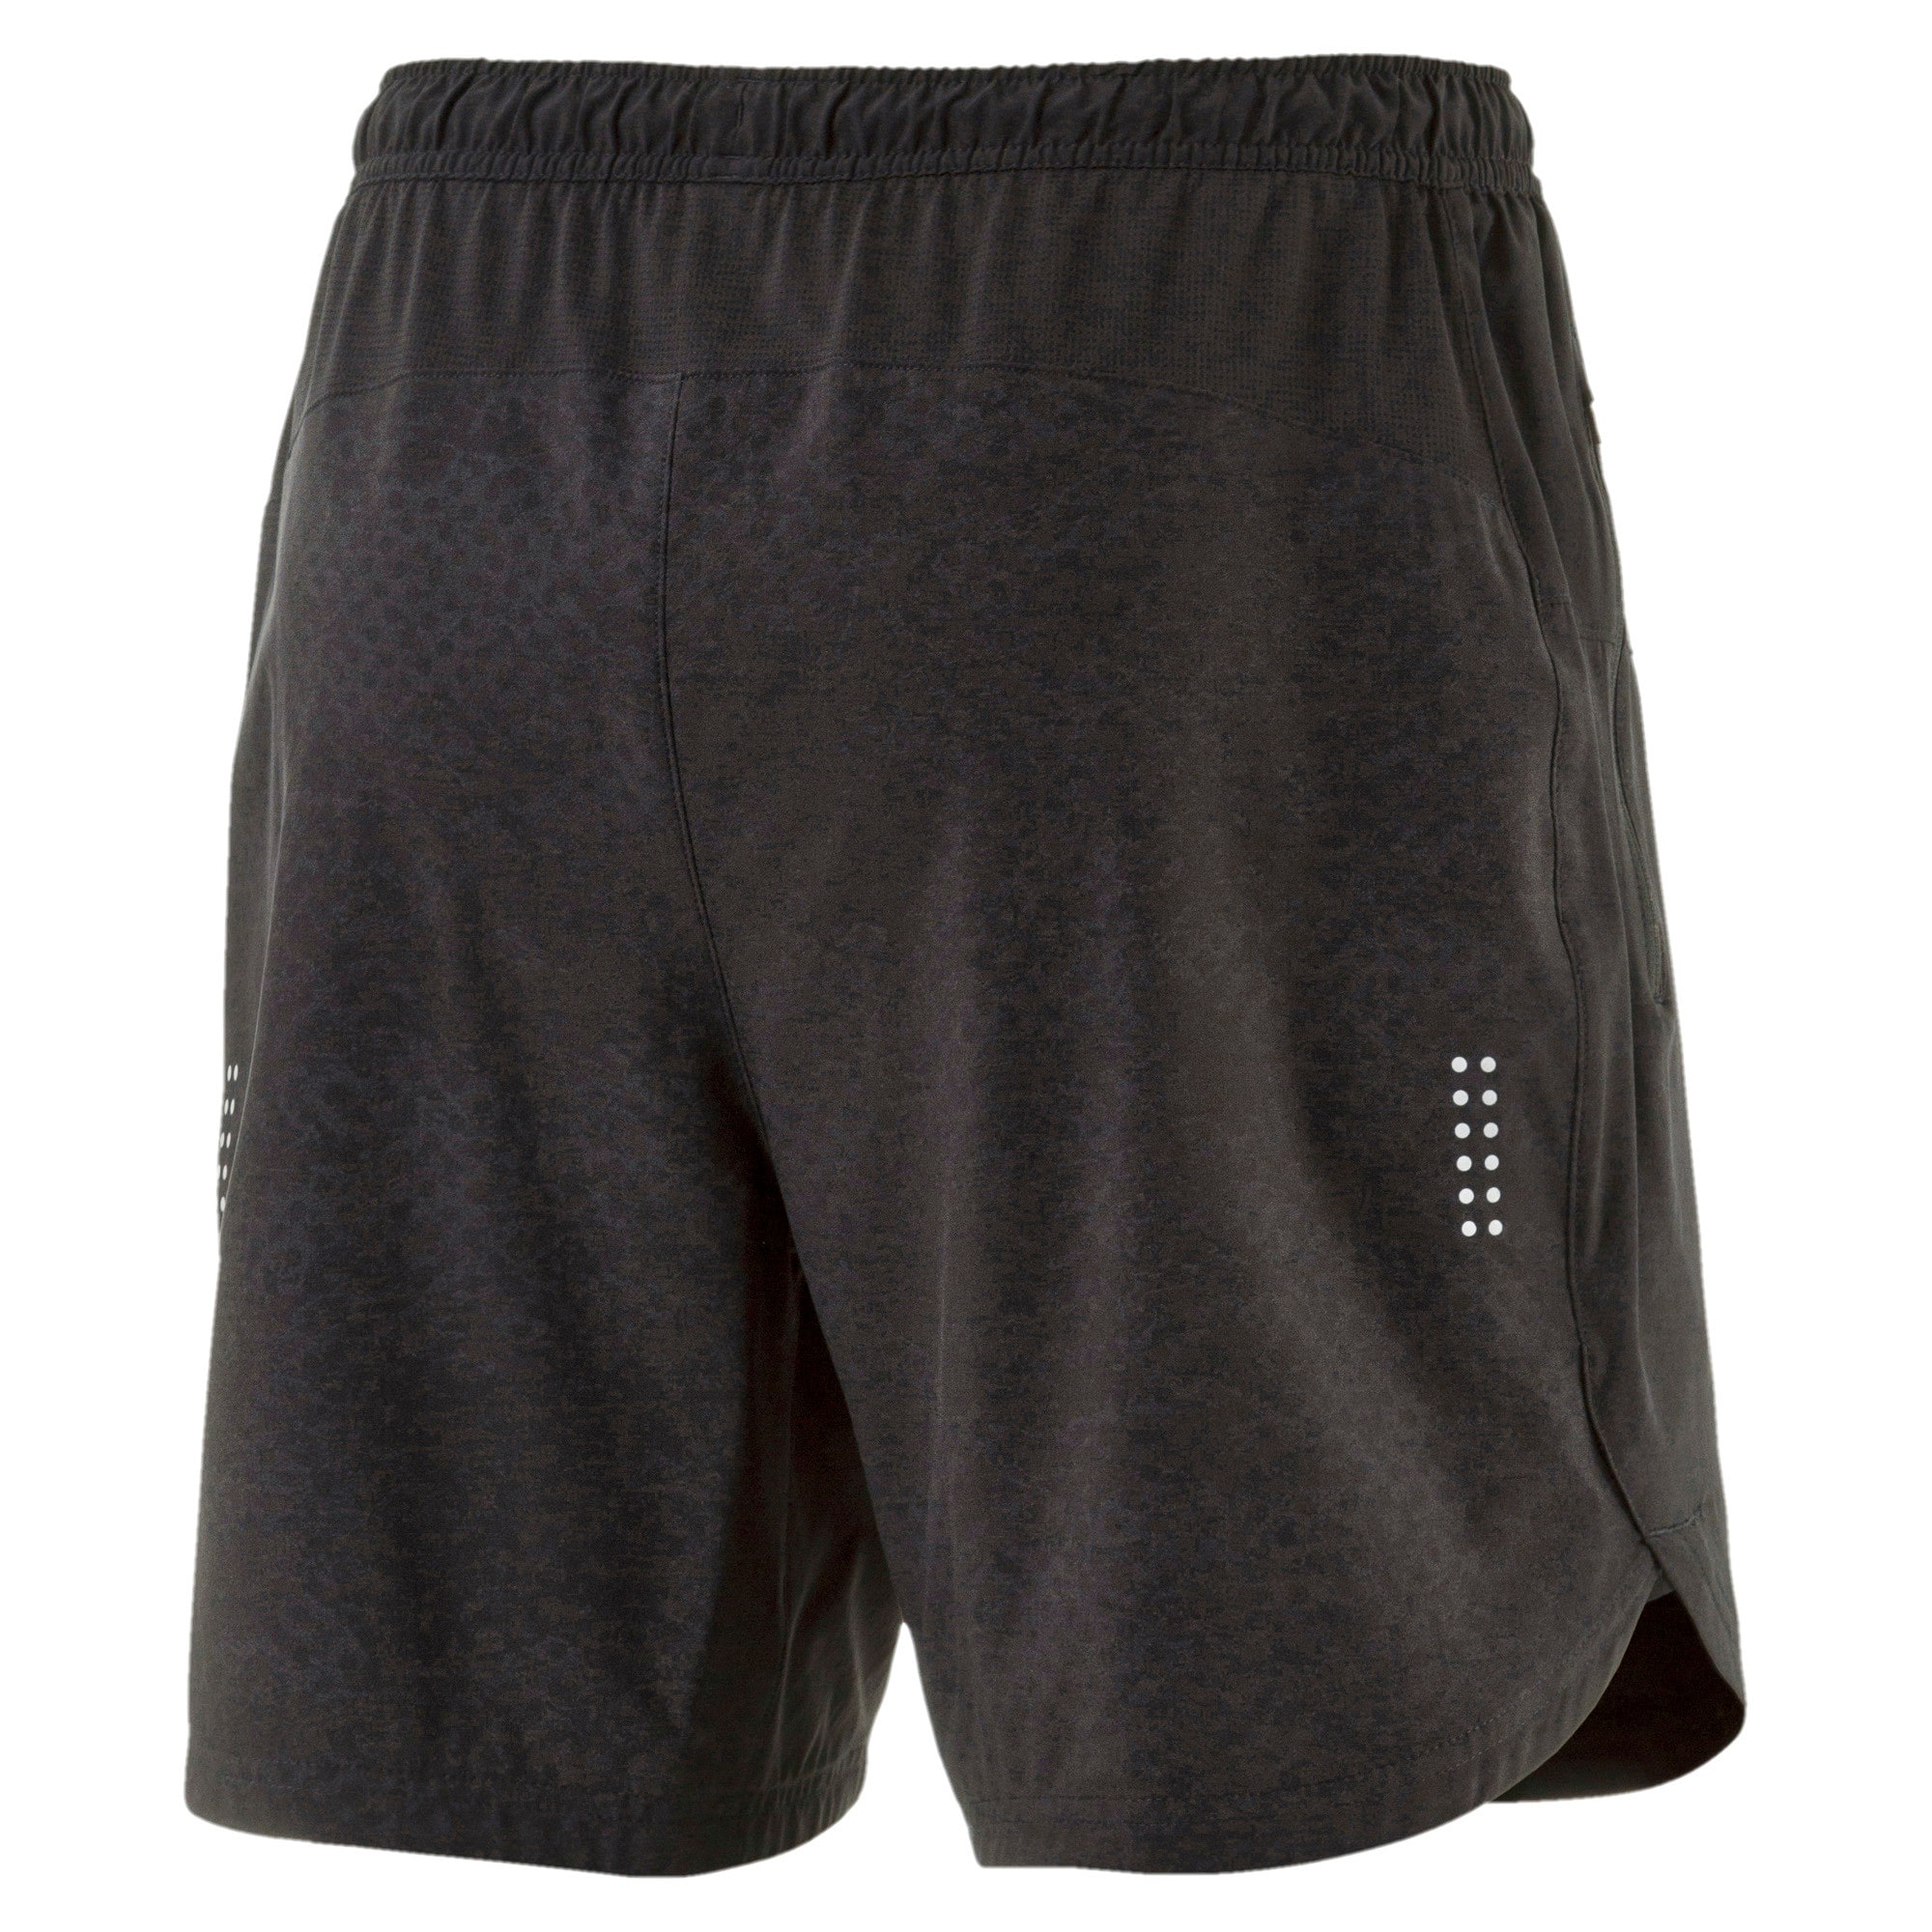 Thumbnail 4 of Pace 7'' Graphic Men's Running Shorts, Puma Black, medium-IND